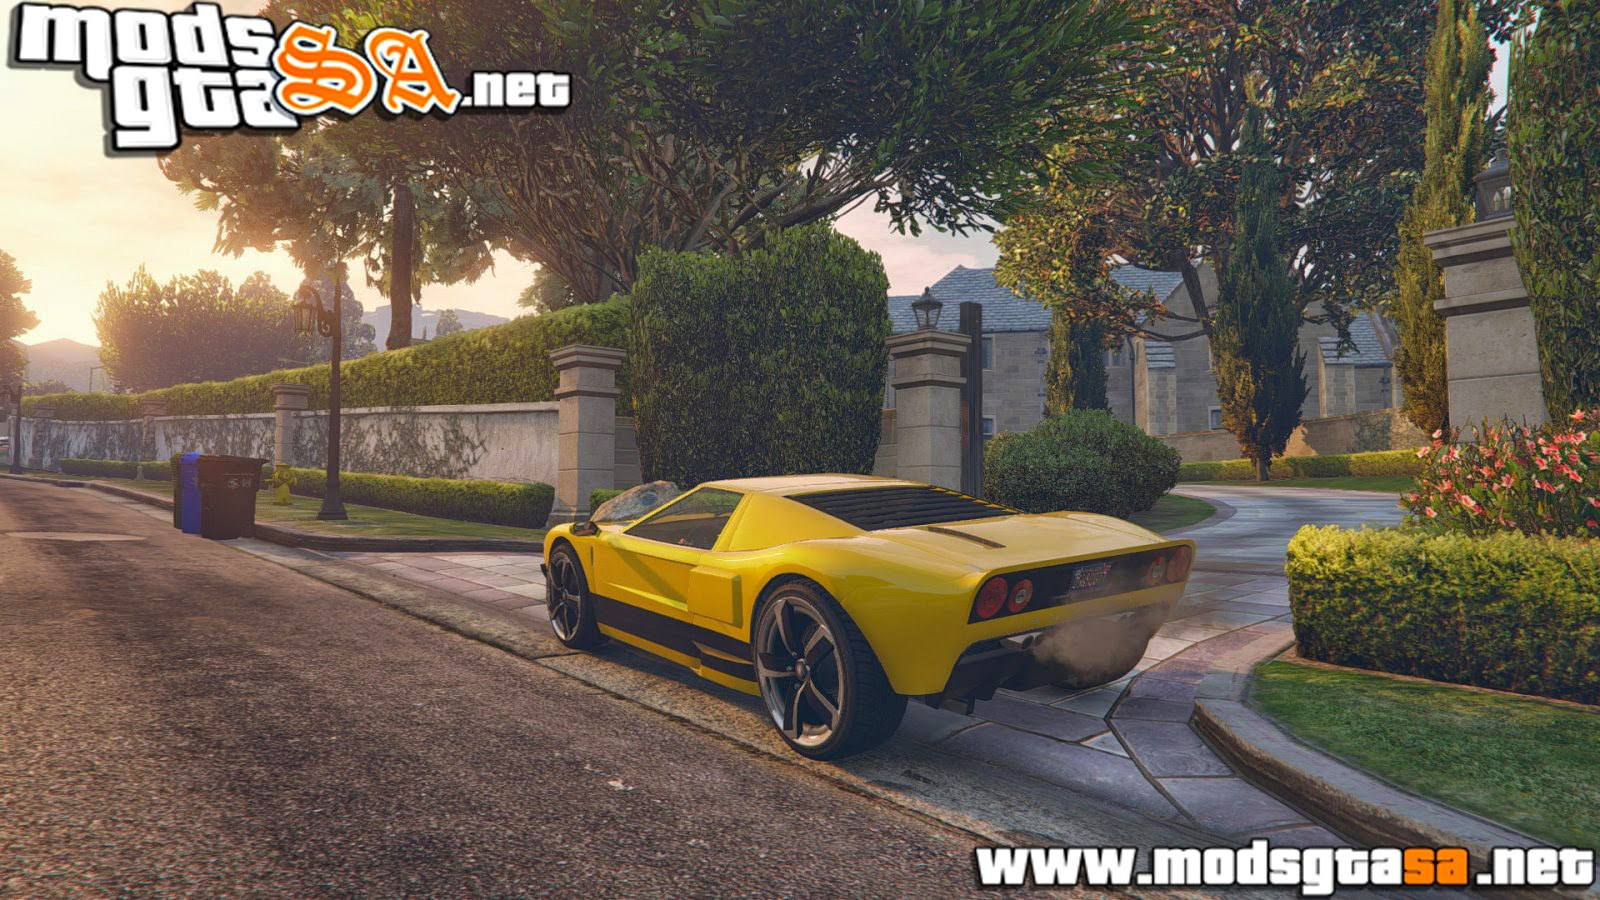 V - Nexus Lighting FX para GTA V PC